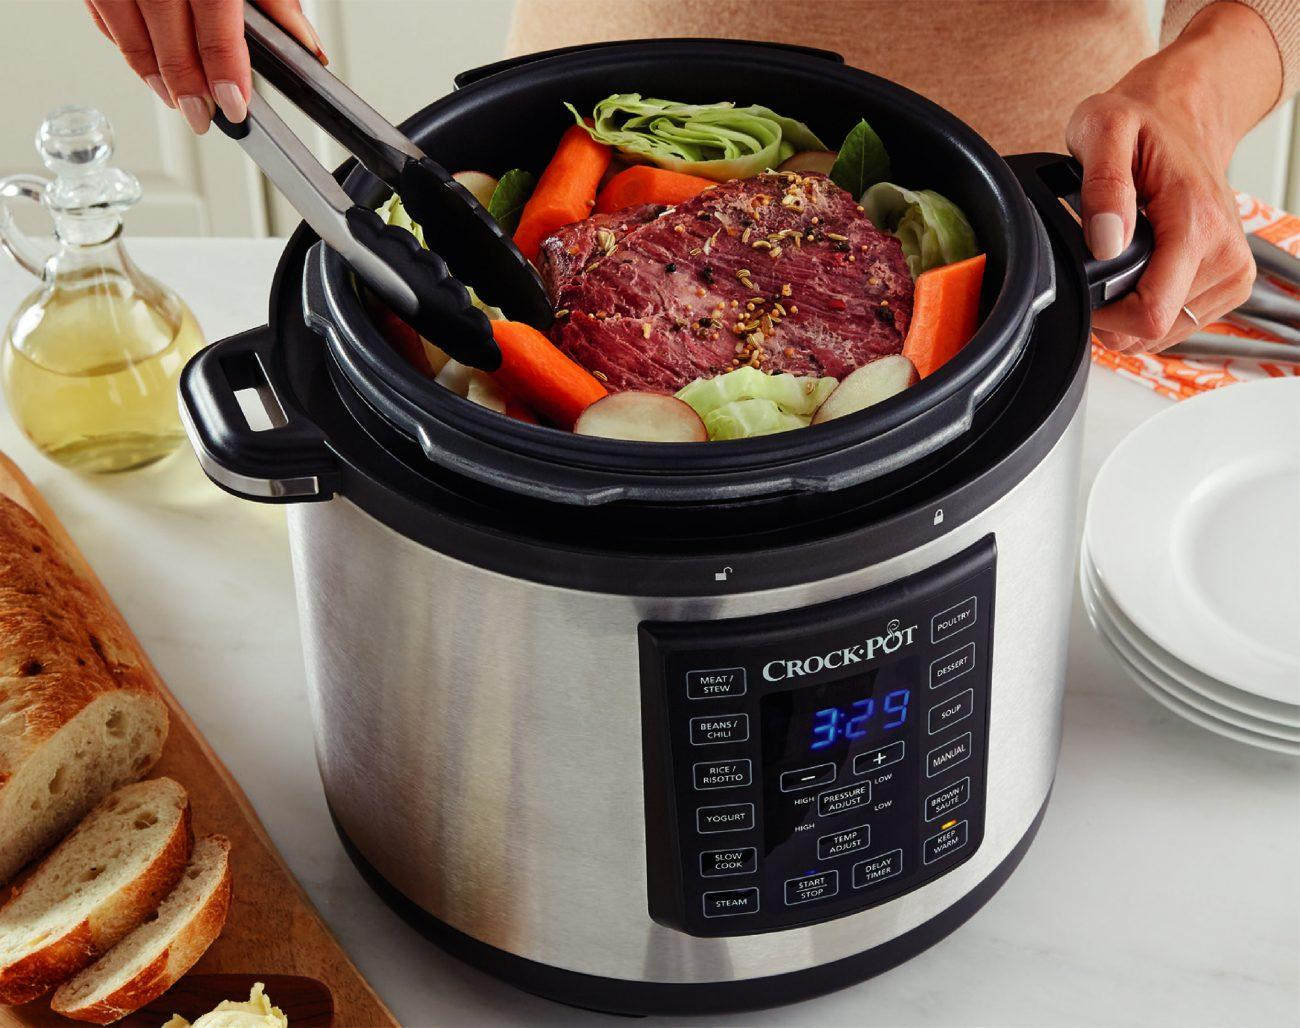 Express crock-pot